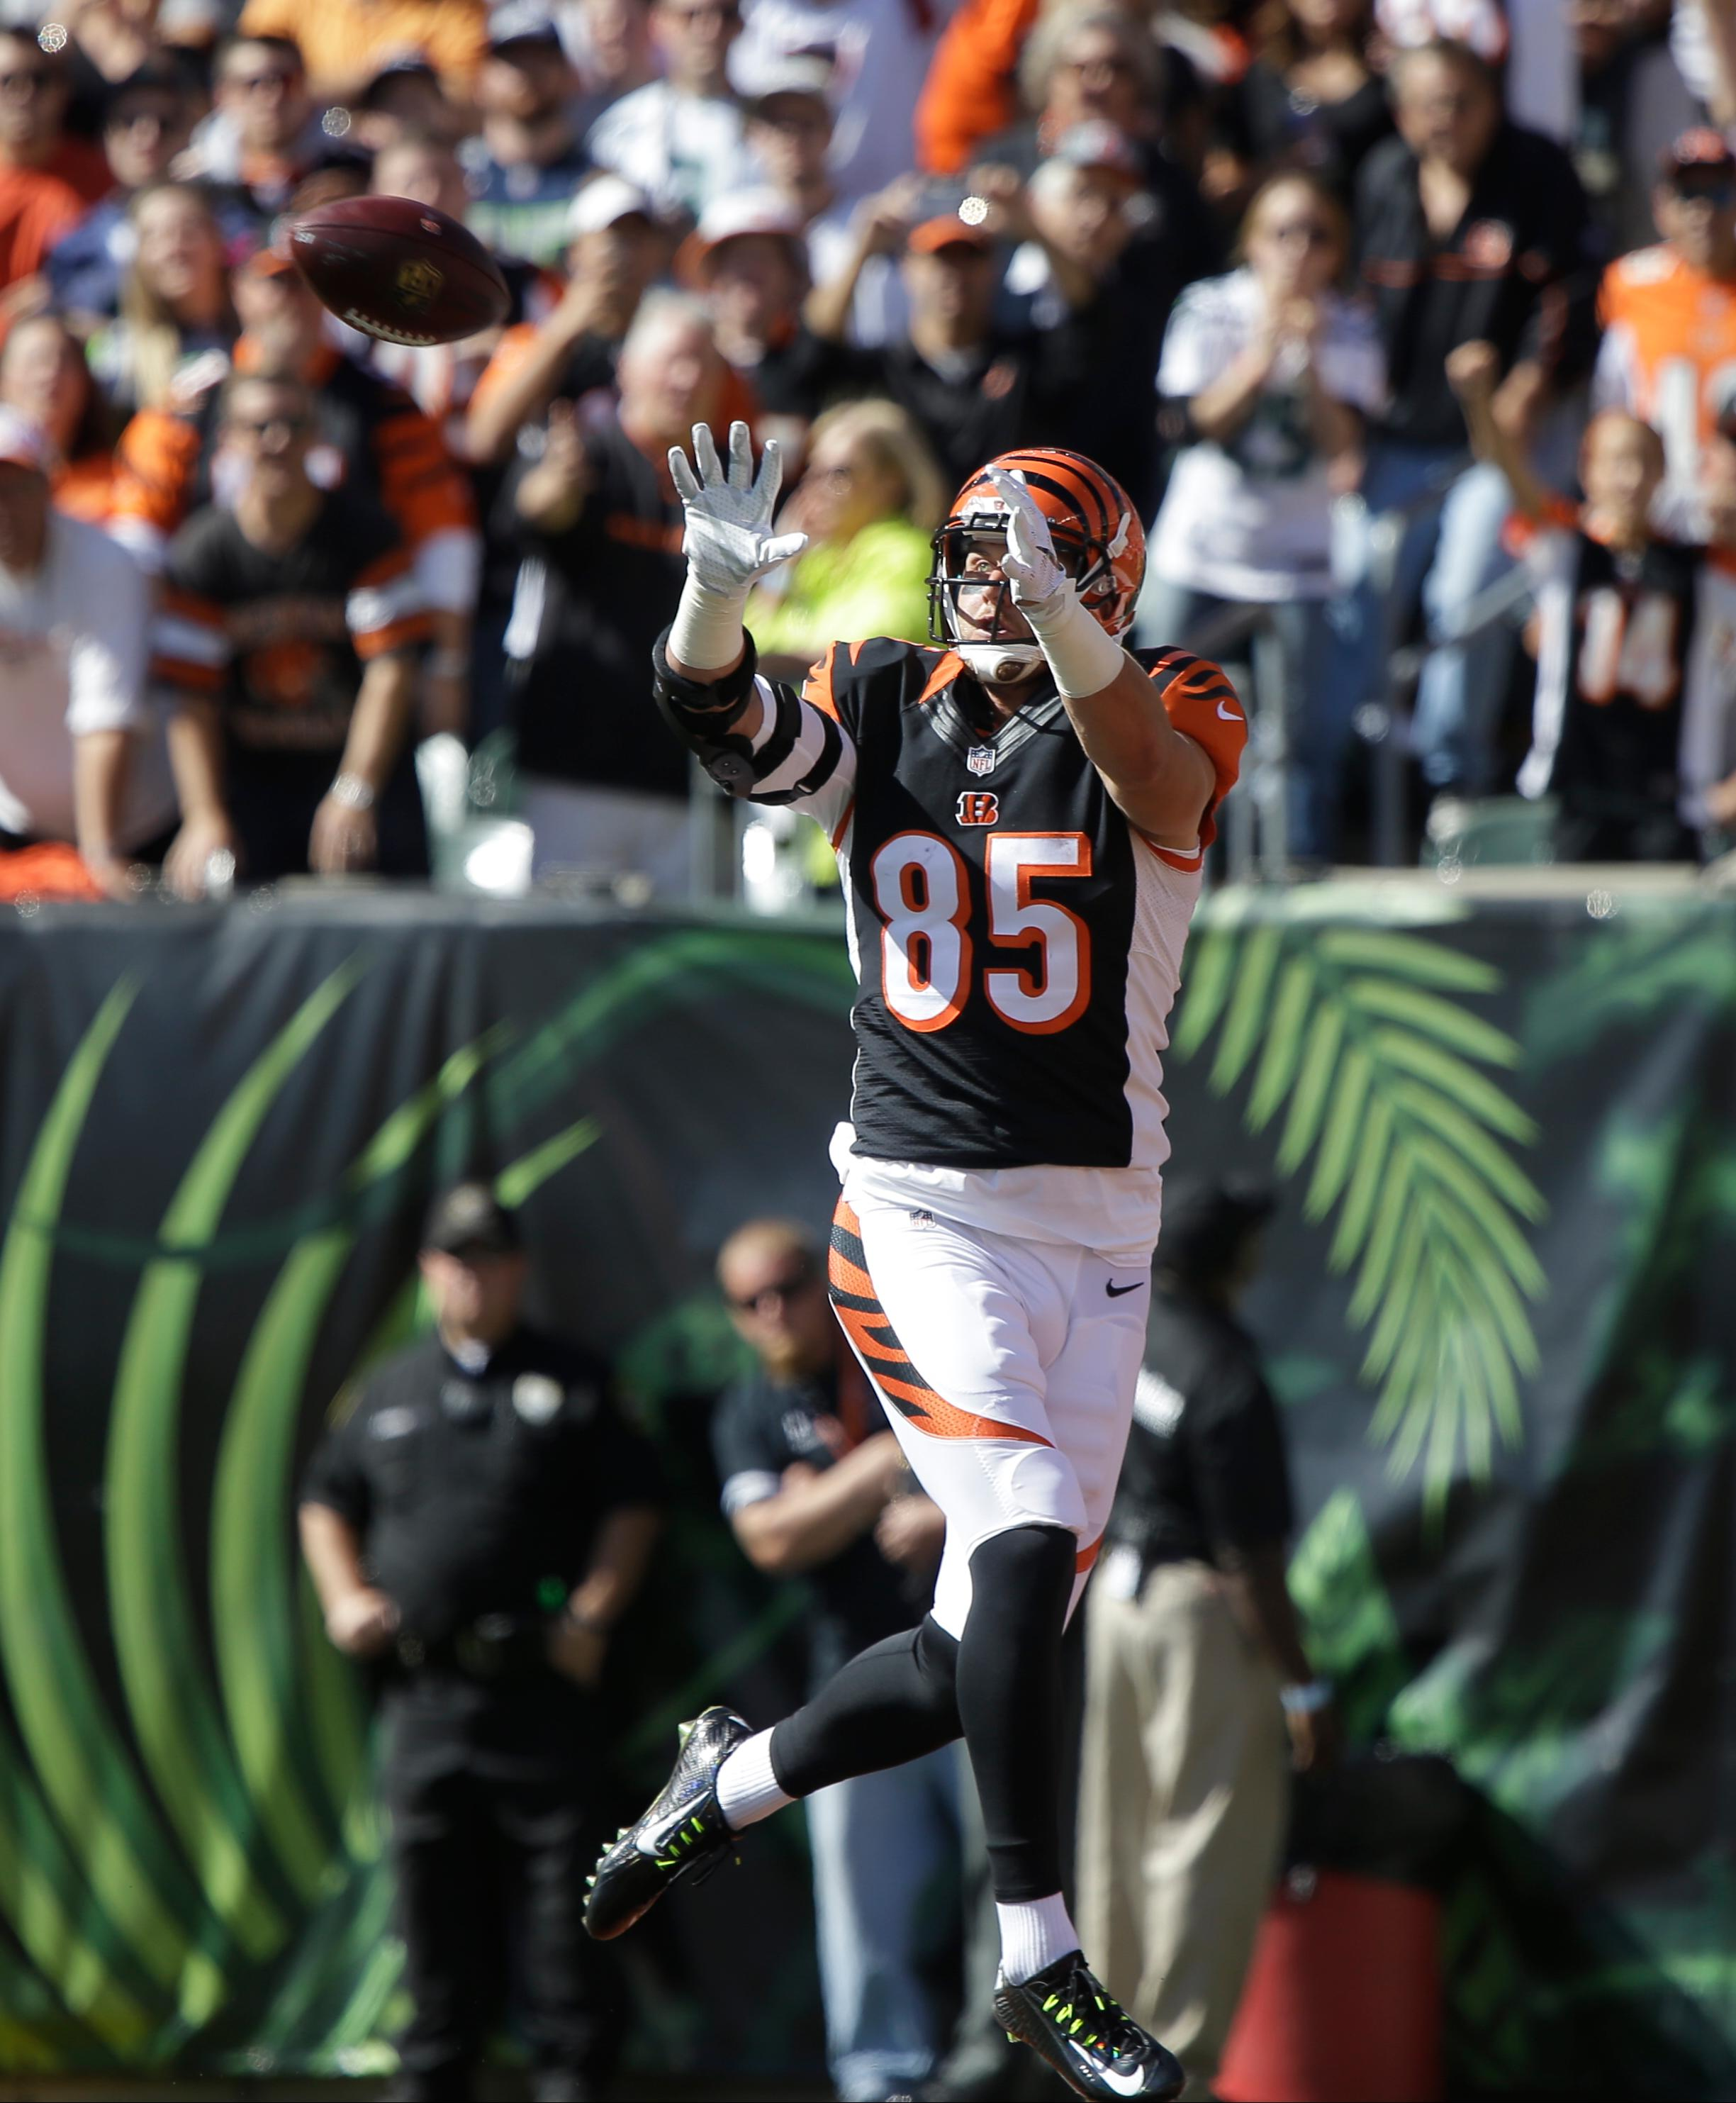 Eifert cleared from concussion protocol and full participant in